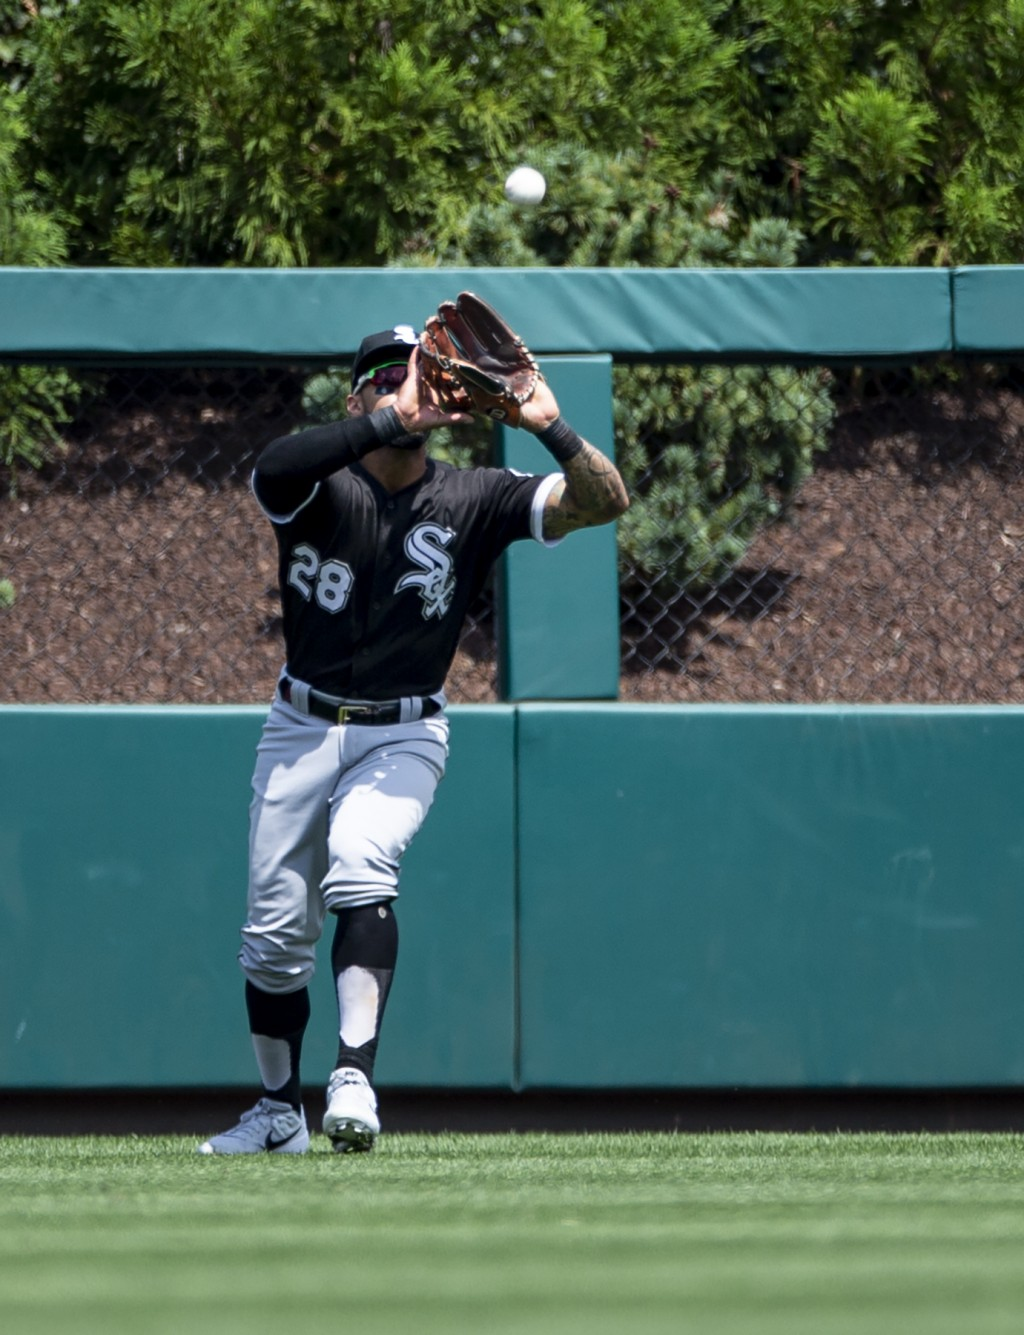 Chicago White Sox center fielder Leury Garcia catches a fly ball hit by Philadelphia Phillies' Jean Segura during the first inning of a baseball game,